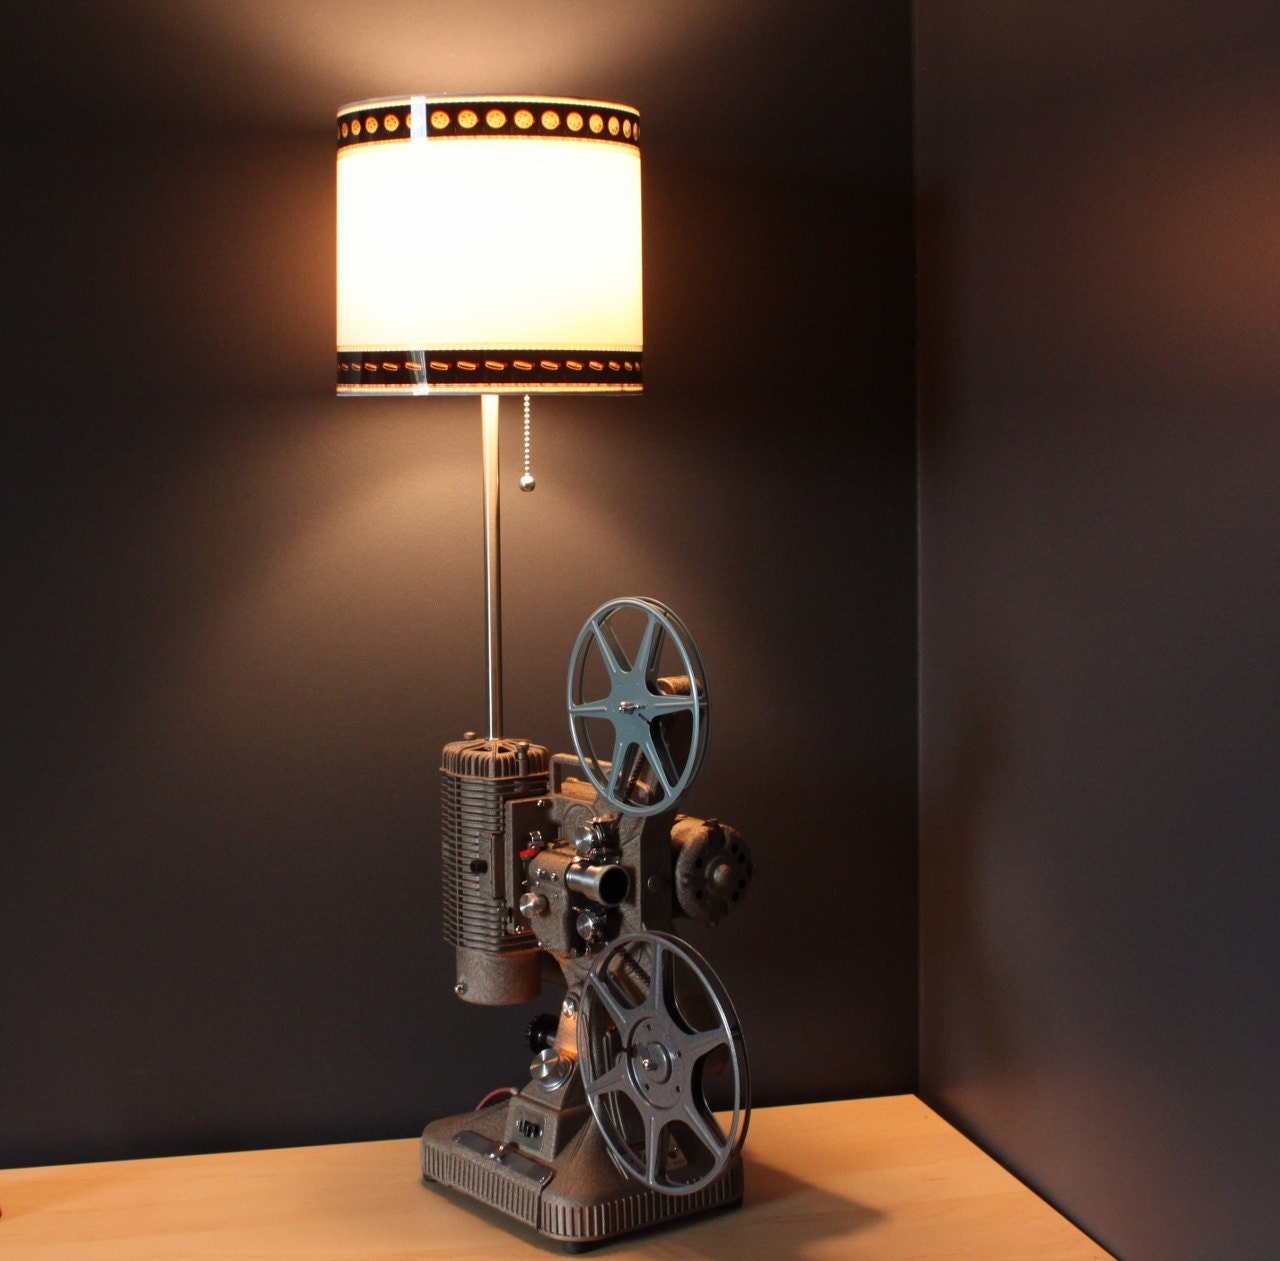 Home Theater Decor 35mm Film Lamp Shade Option For Movie